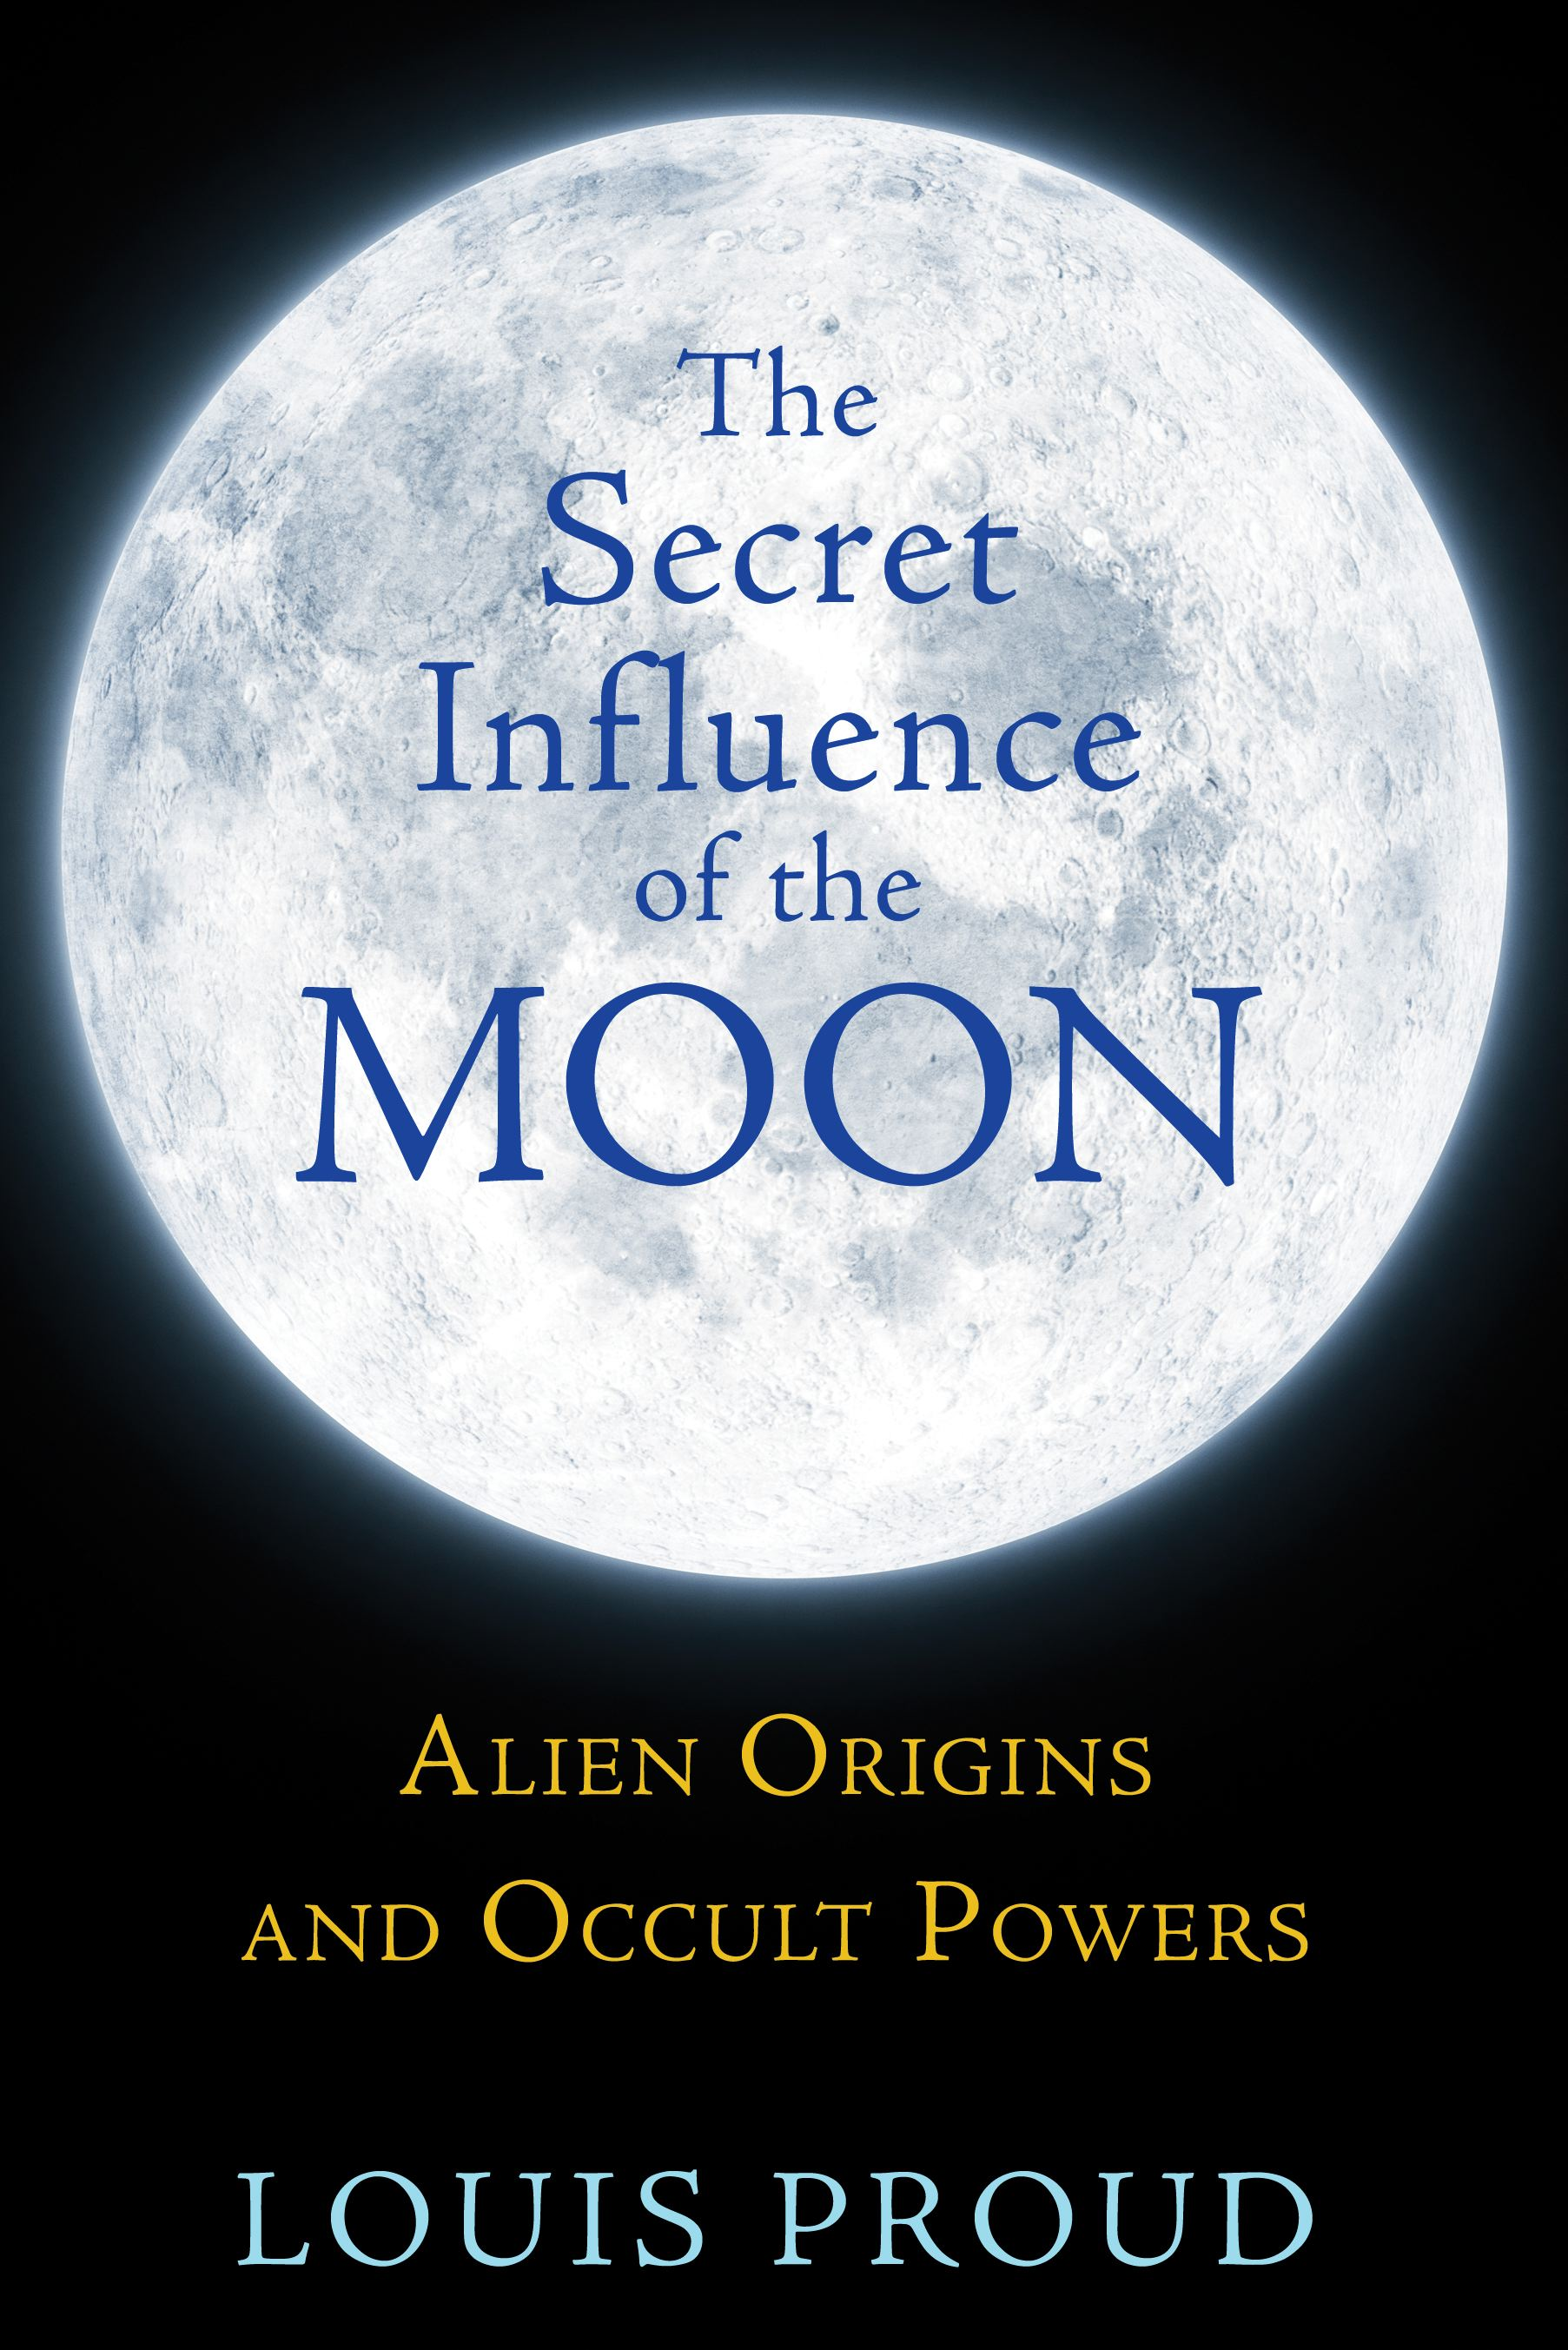 The-secret-influence-of-the-moon-9781594774942_hr